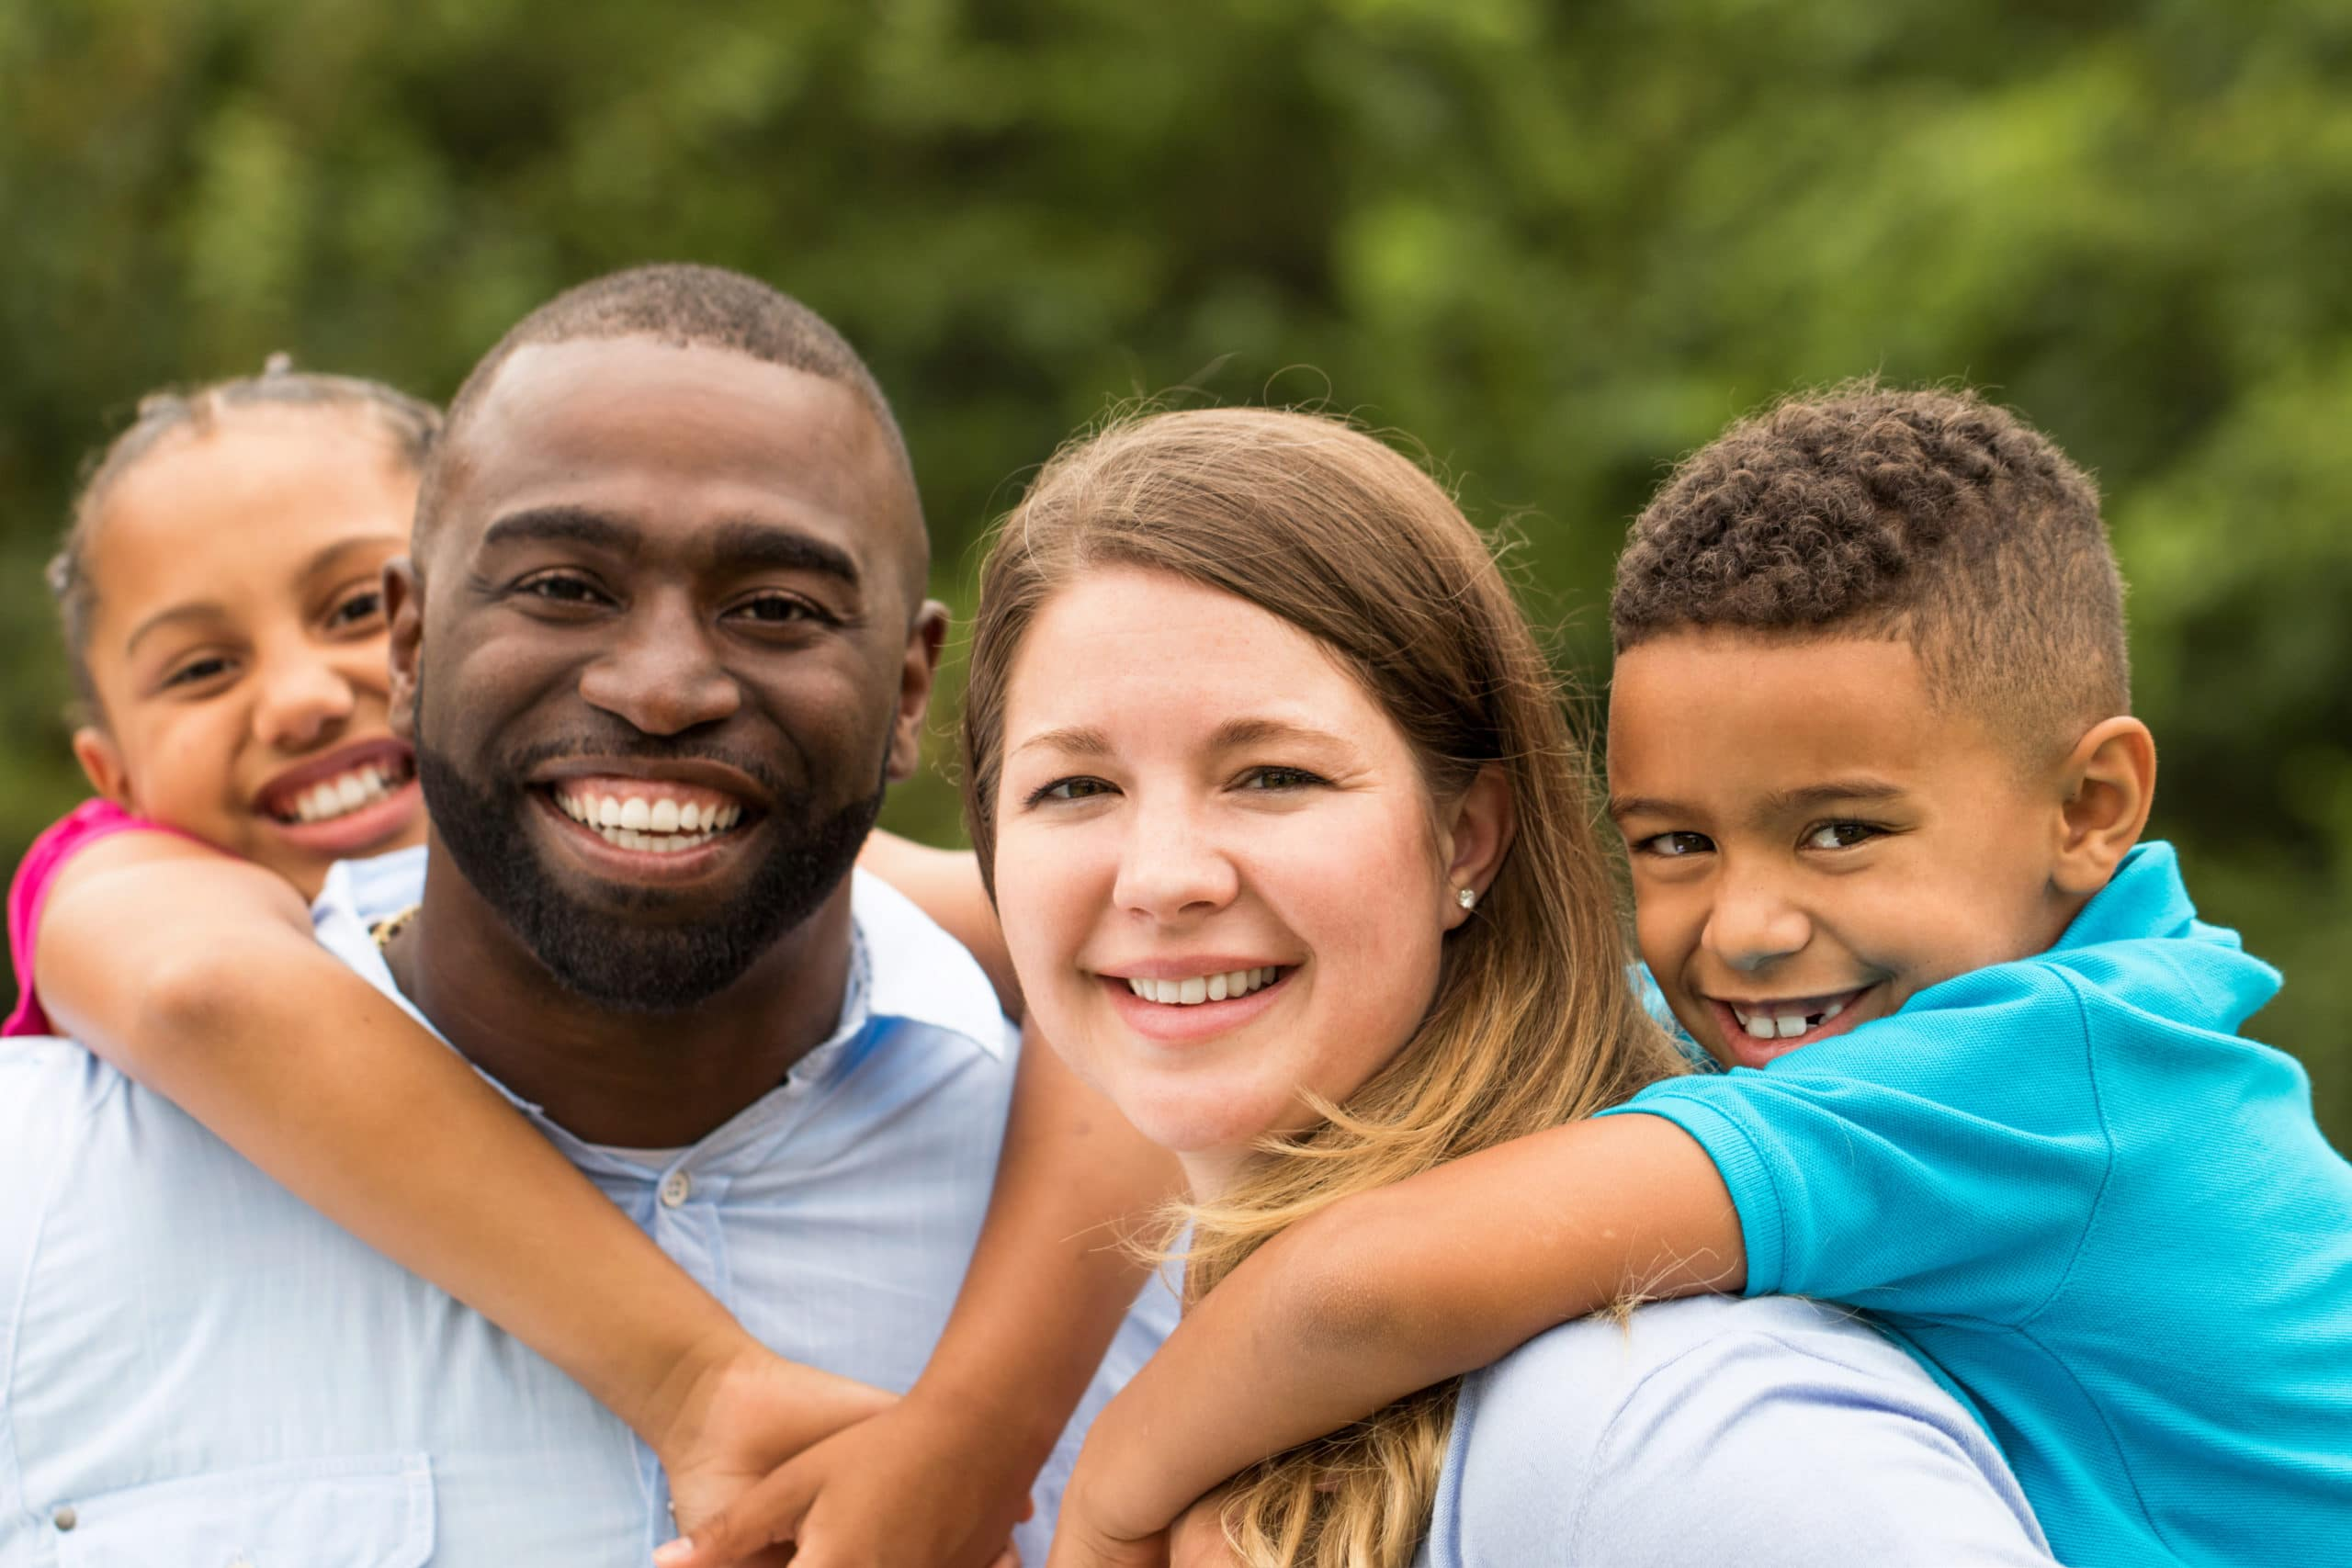 Beautiful diverse family with children